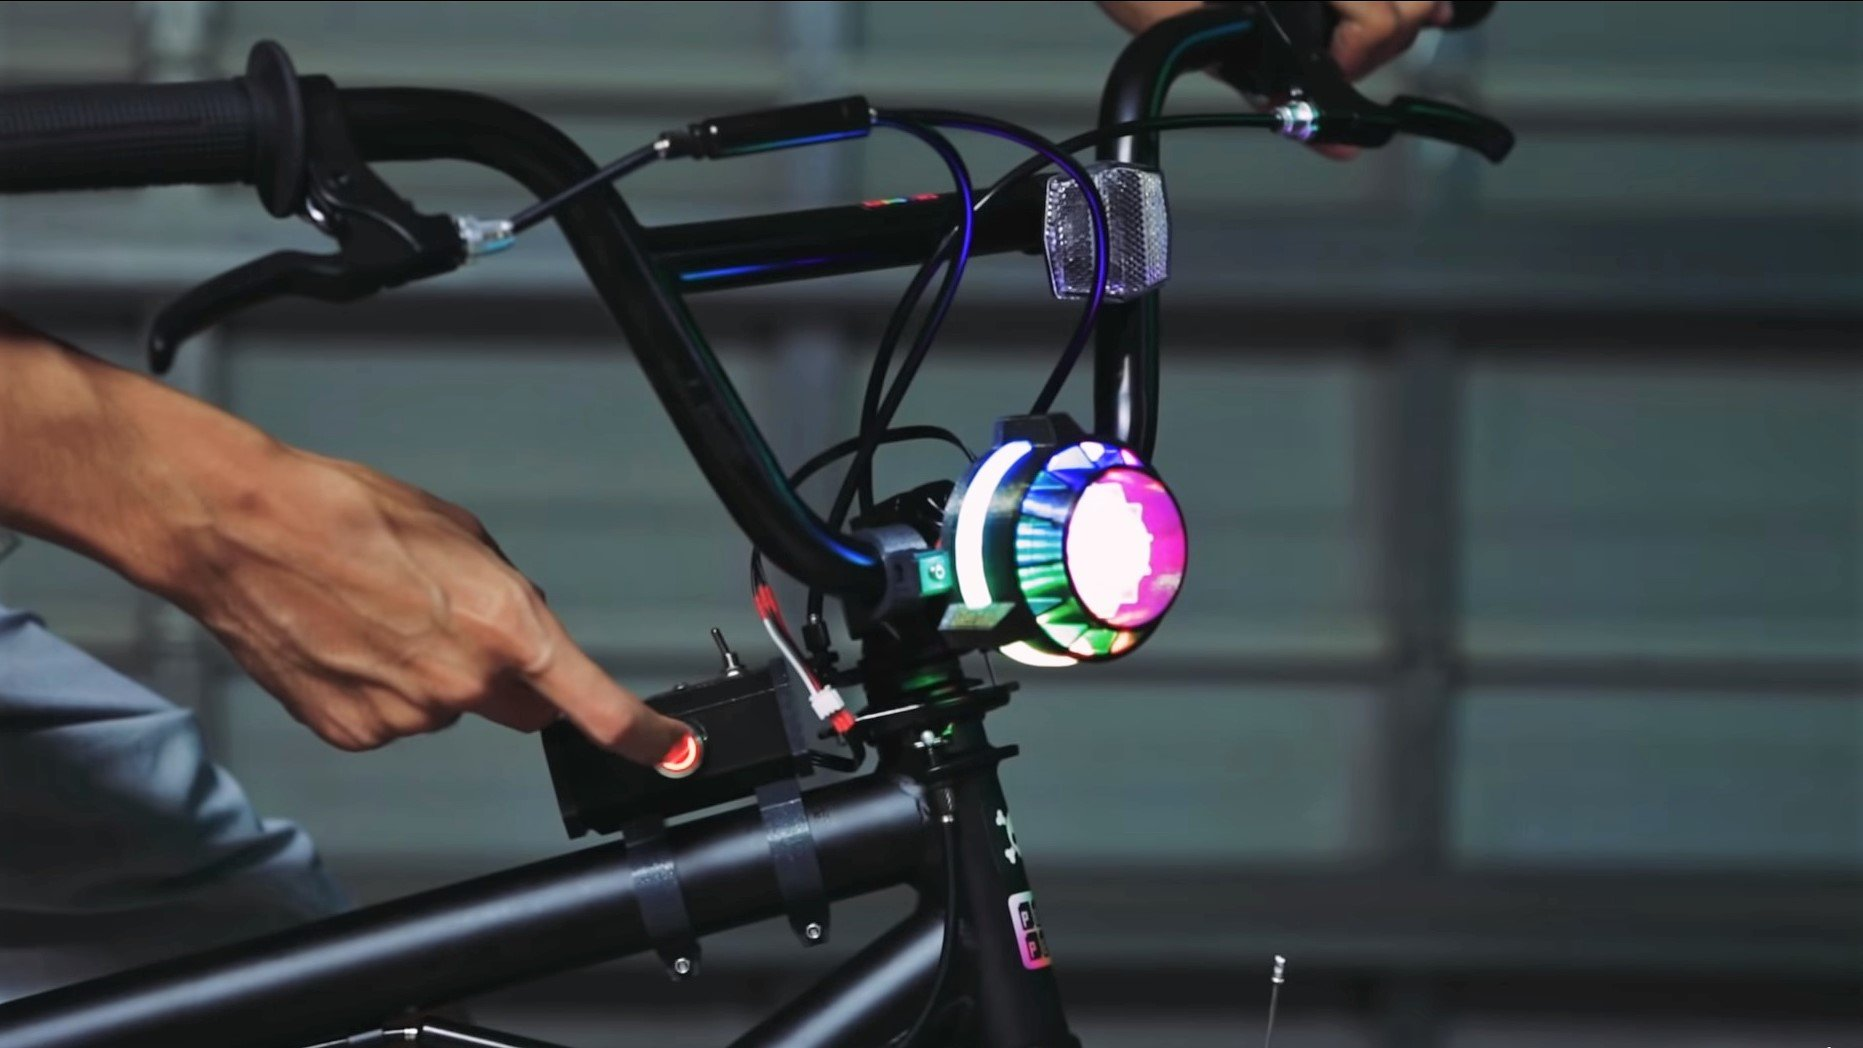 [Project] NeoPixel Bike Light | All3DP